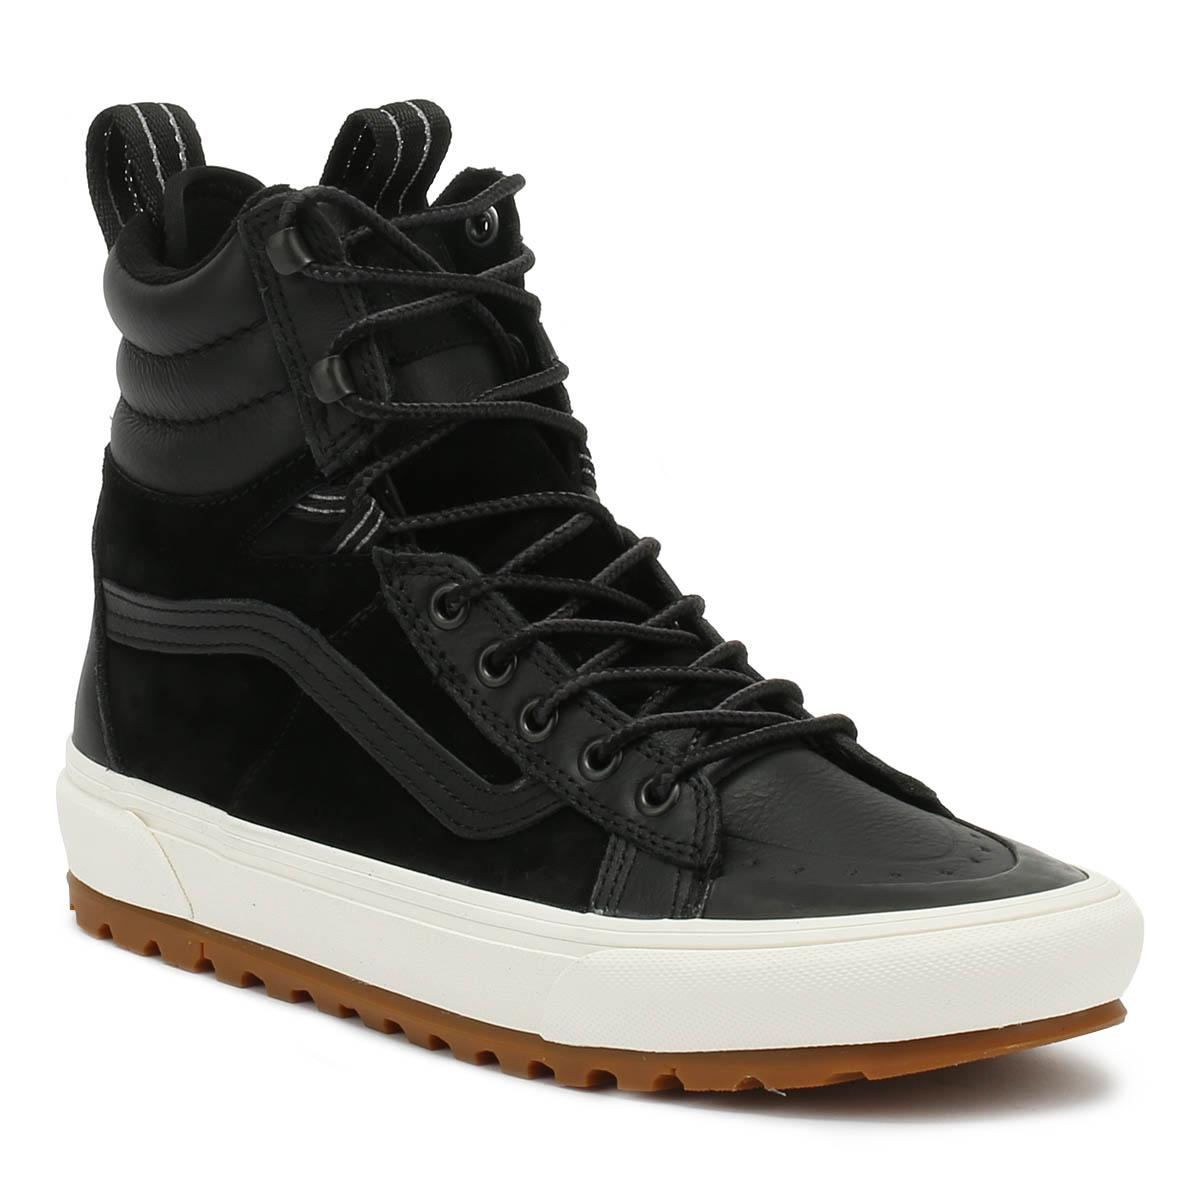 64fb6d6adb Lyst - Vans Sk8-hi Mte Dx Black Boots in Black for Men